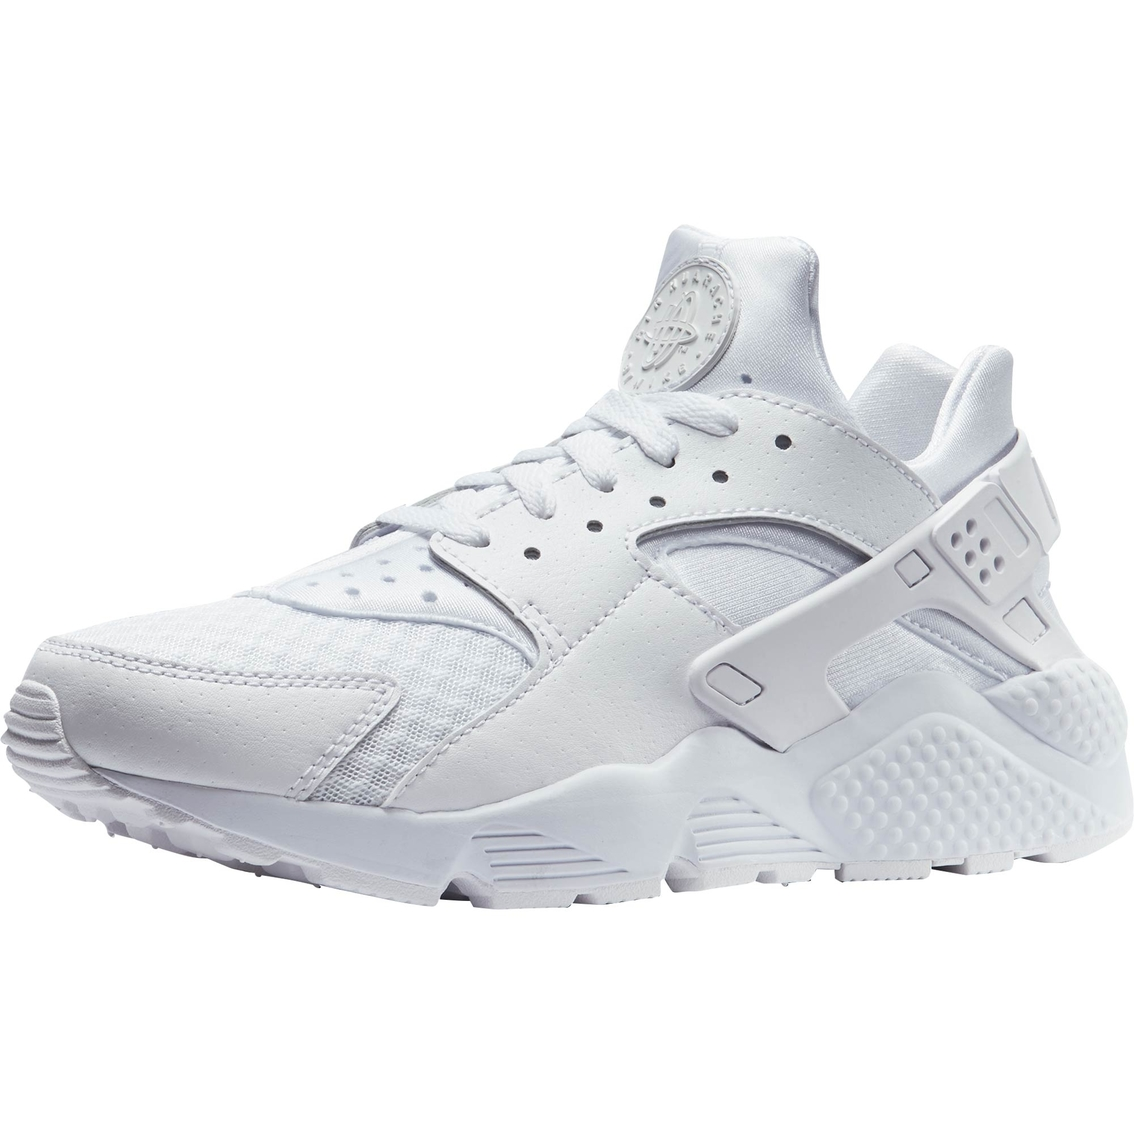 Nike Men's Air Huarache Sneakers